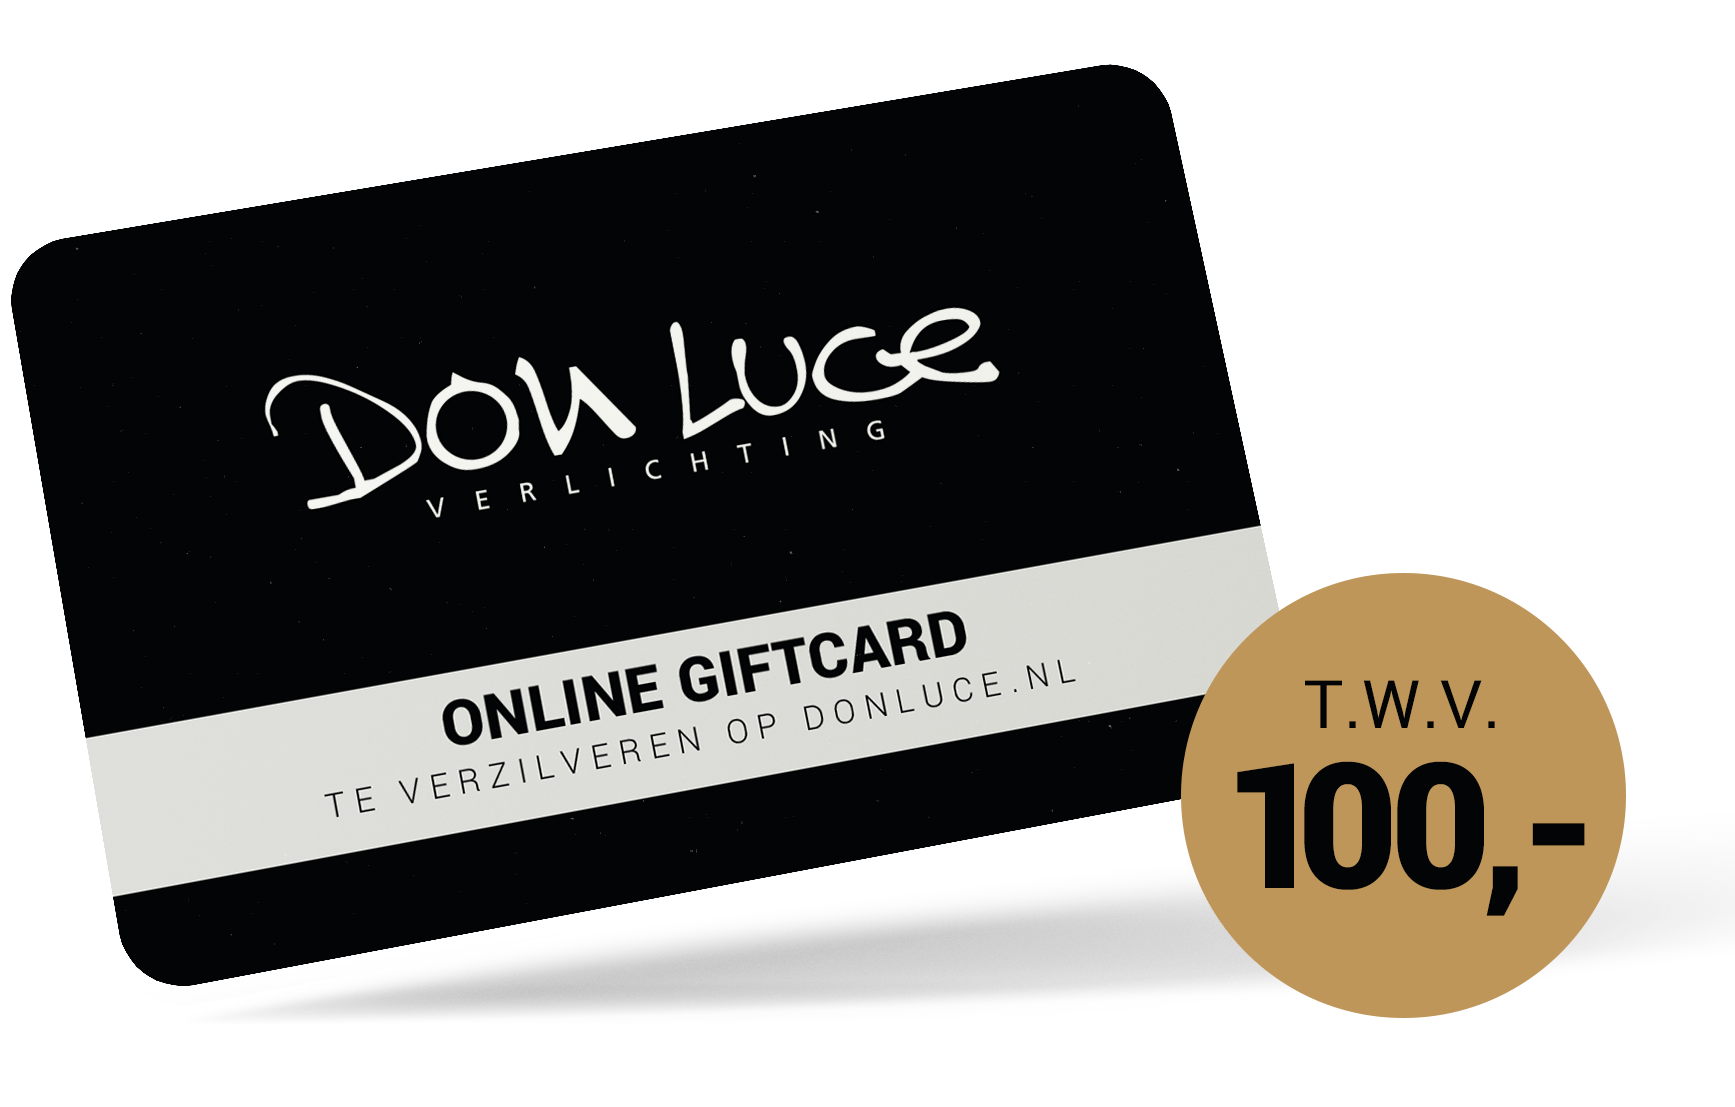 DonLuce Giftcard 100